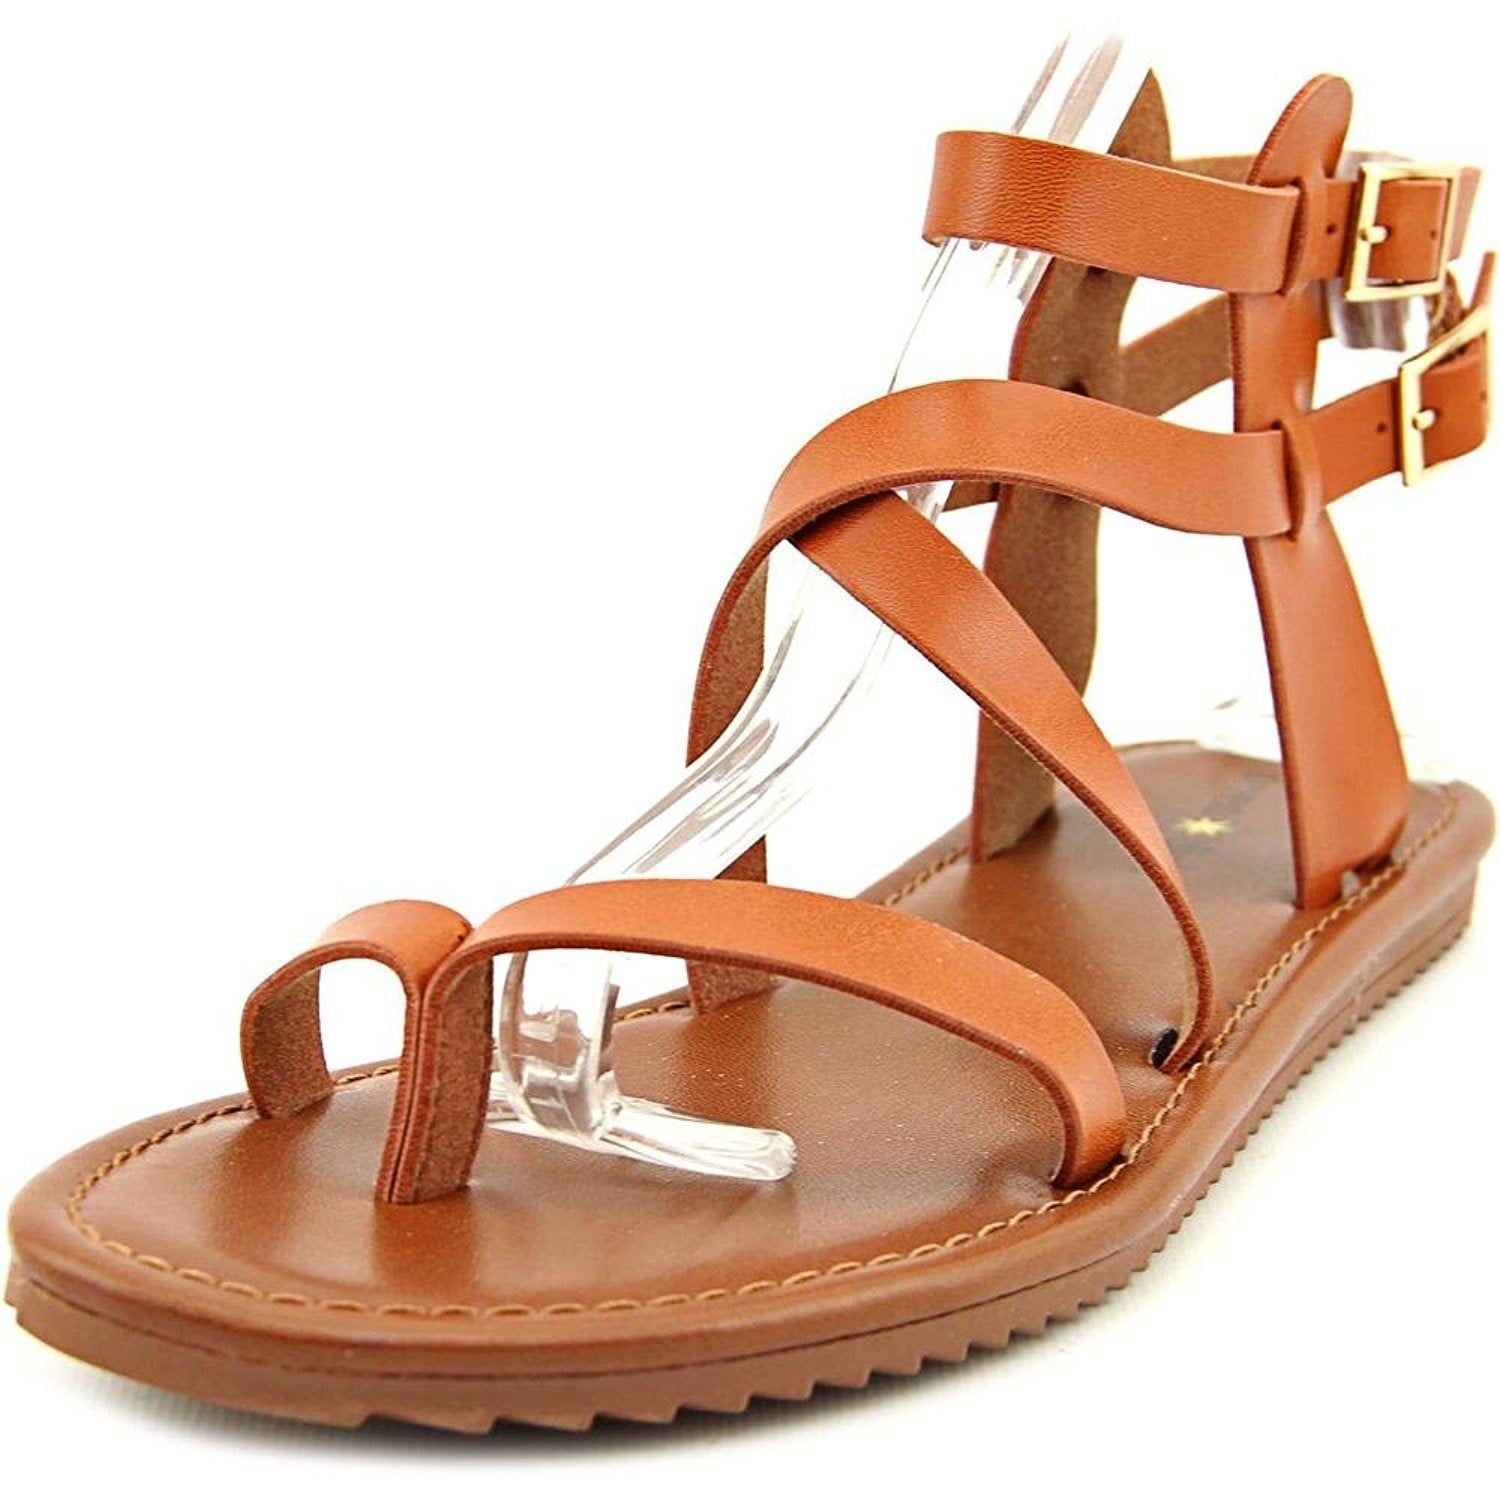 Seven Dials Womens Brown Ankle Strap Sandals Size 8